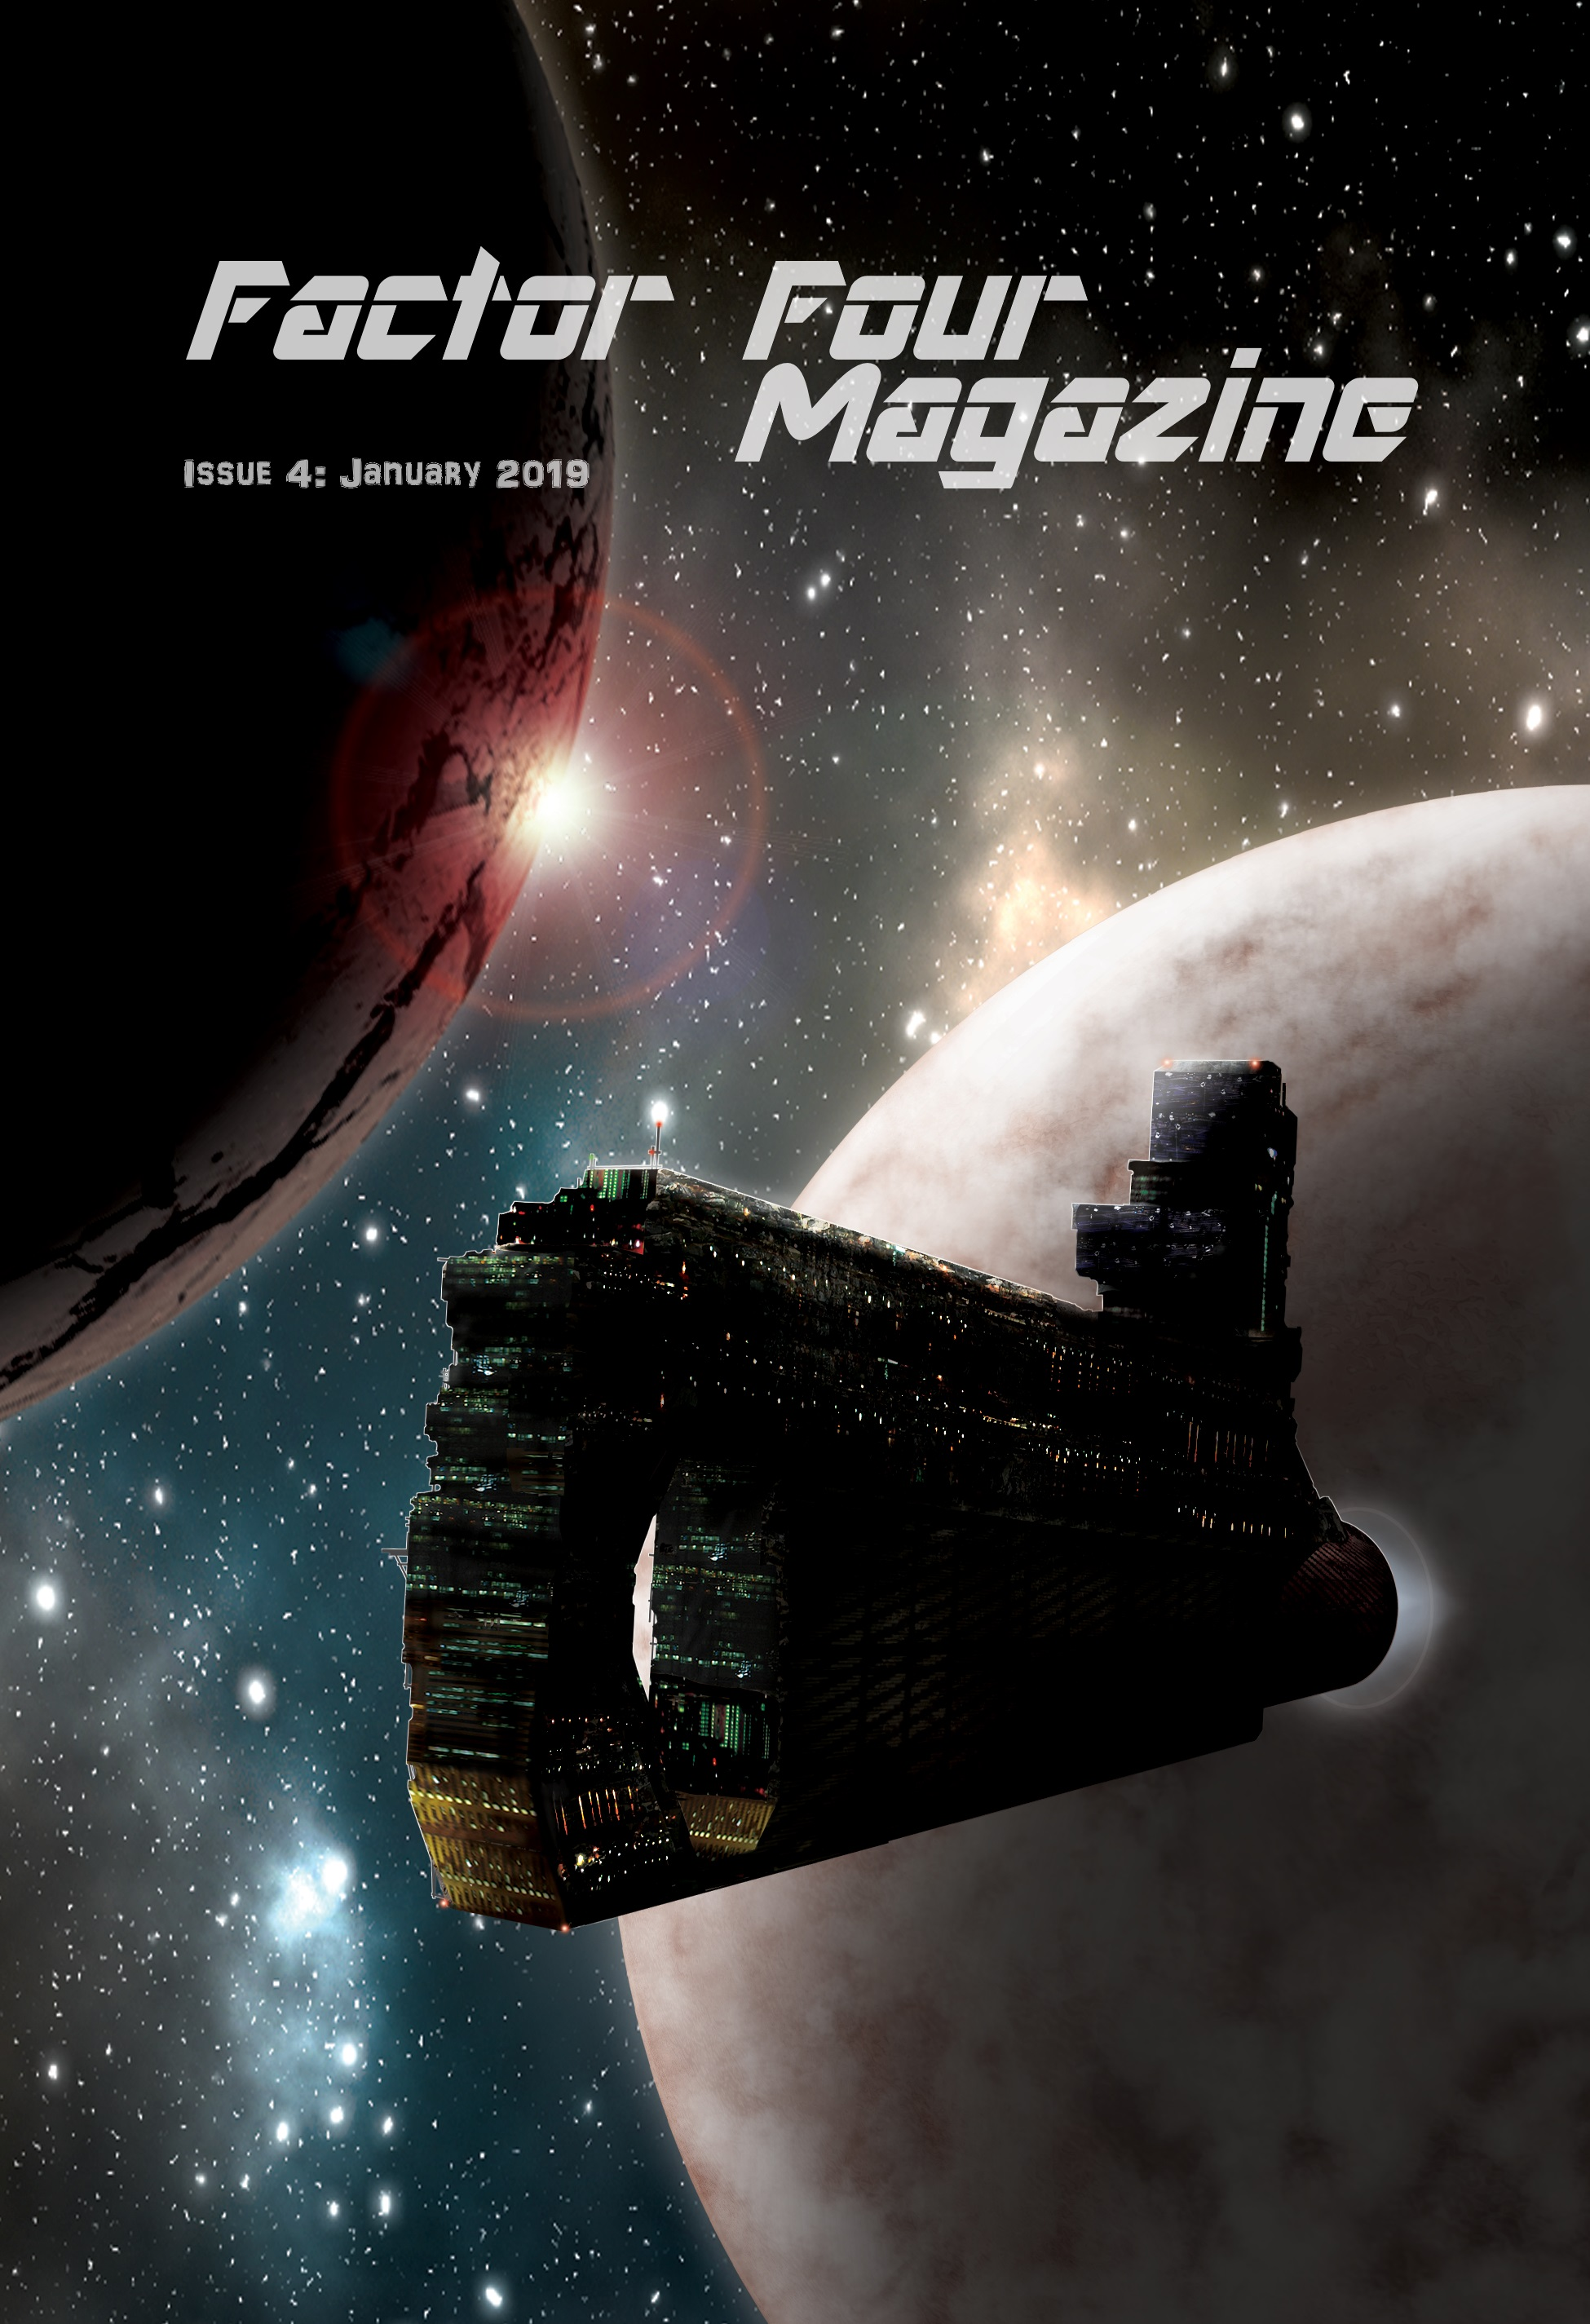 ISSUE 4: January 2019